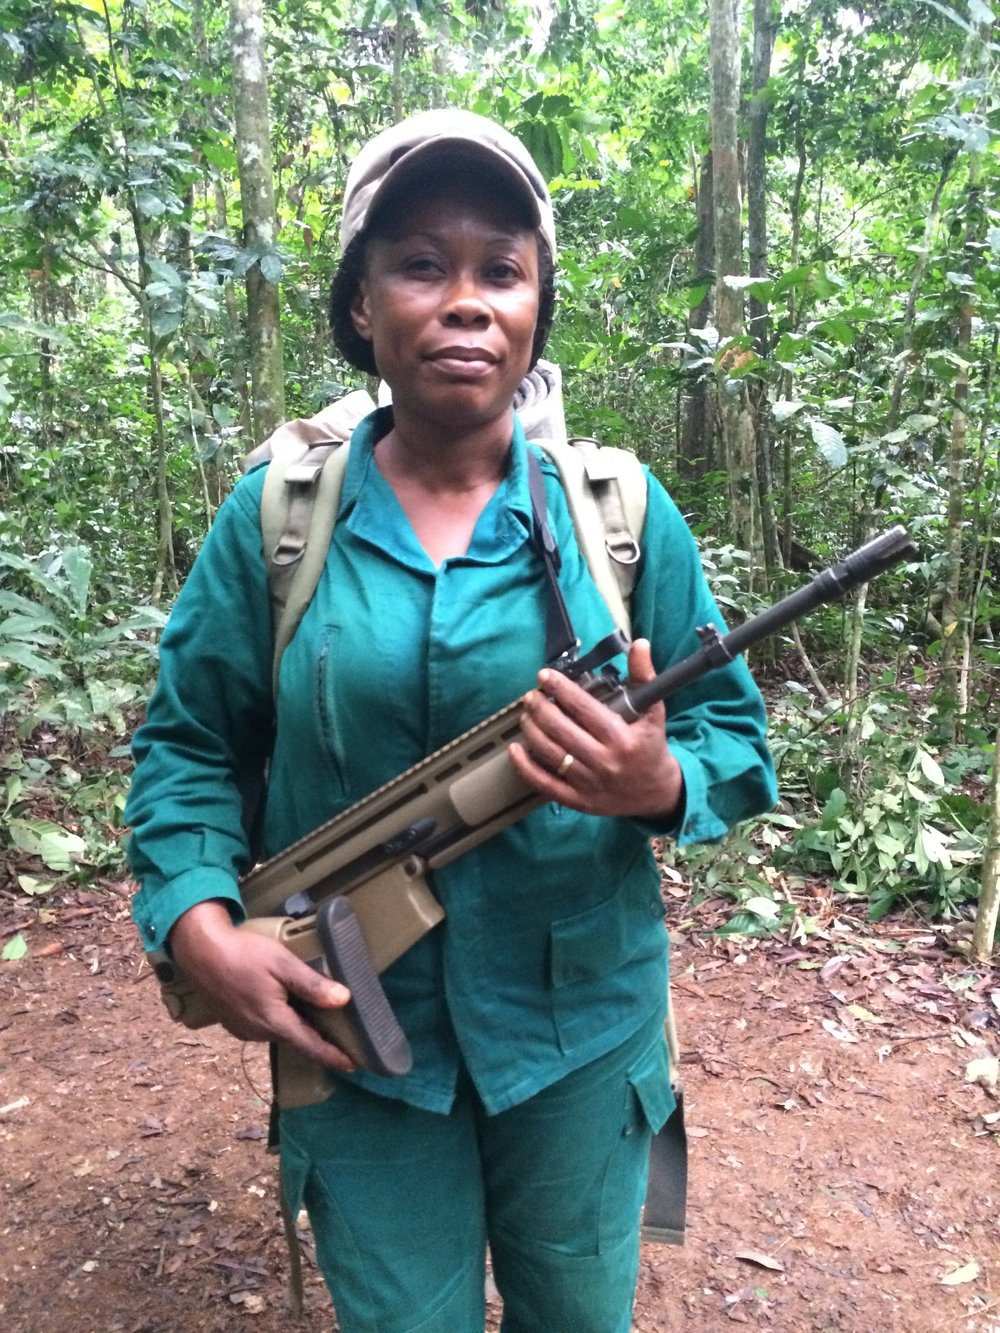 Silent Forests - Sidonie Asseme, one of Cameroon's first female eco-guards, on patrol in Nki National Park